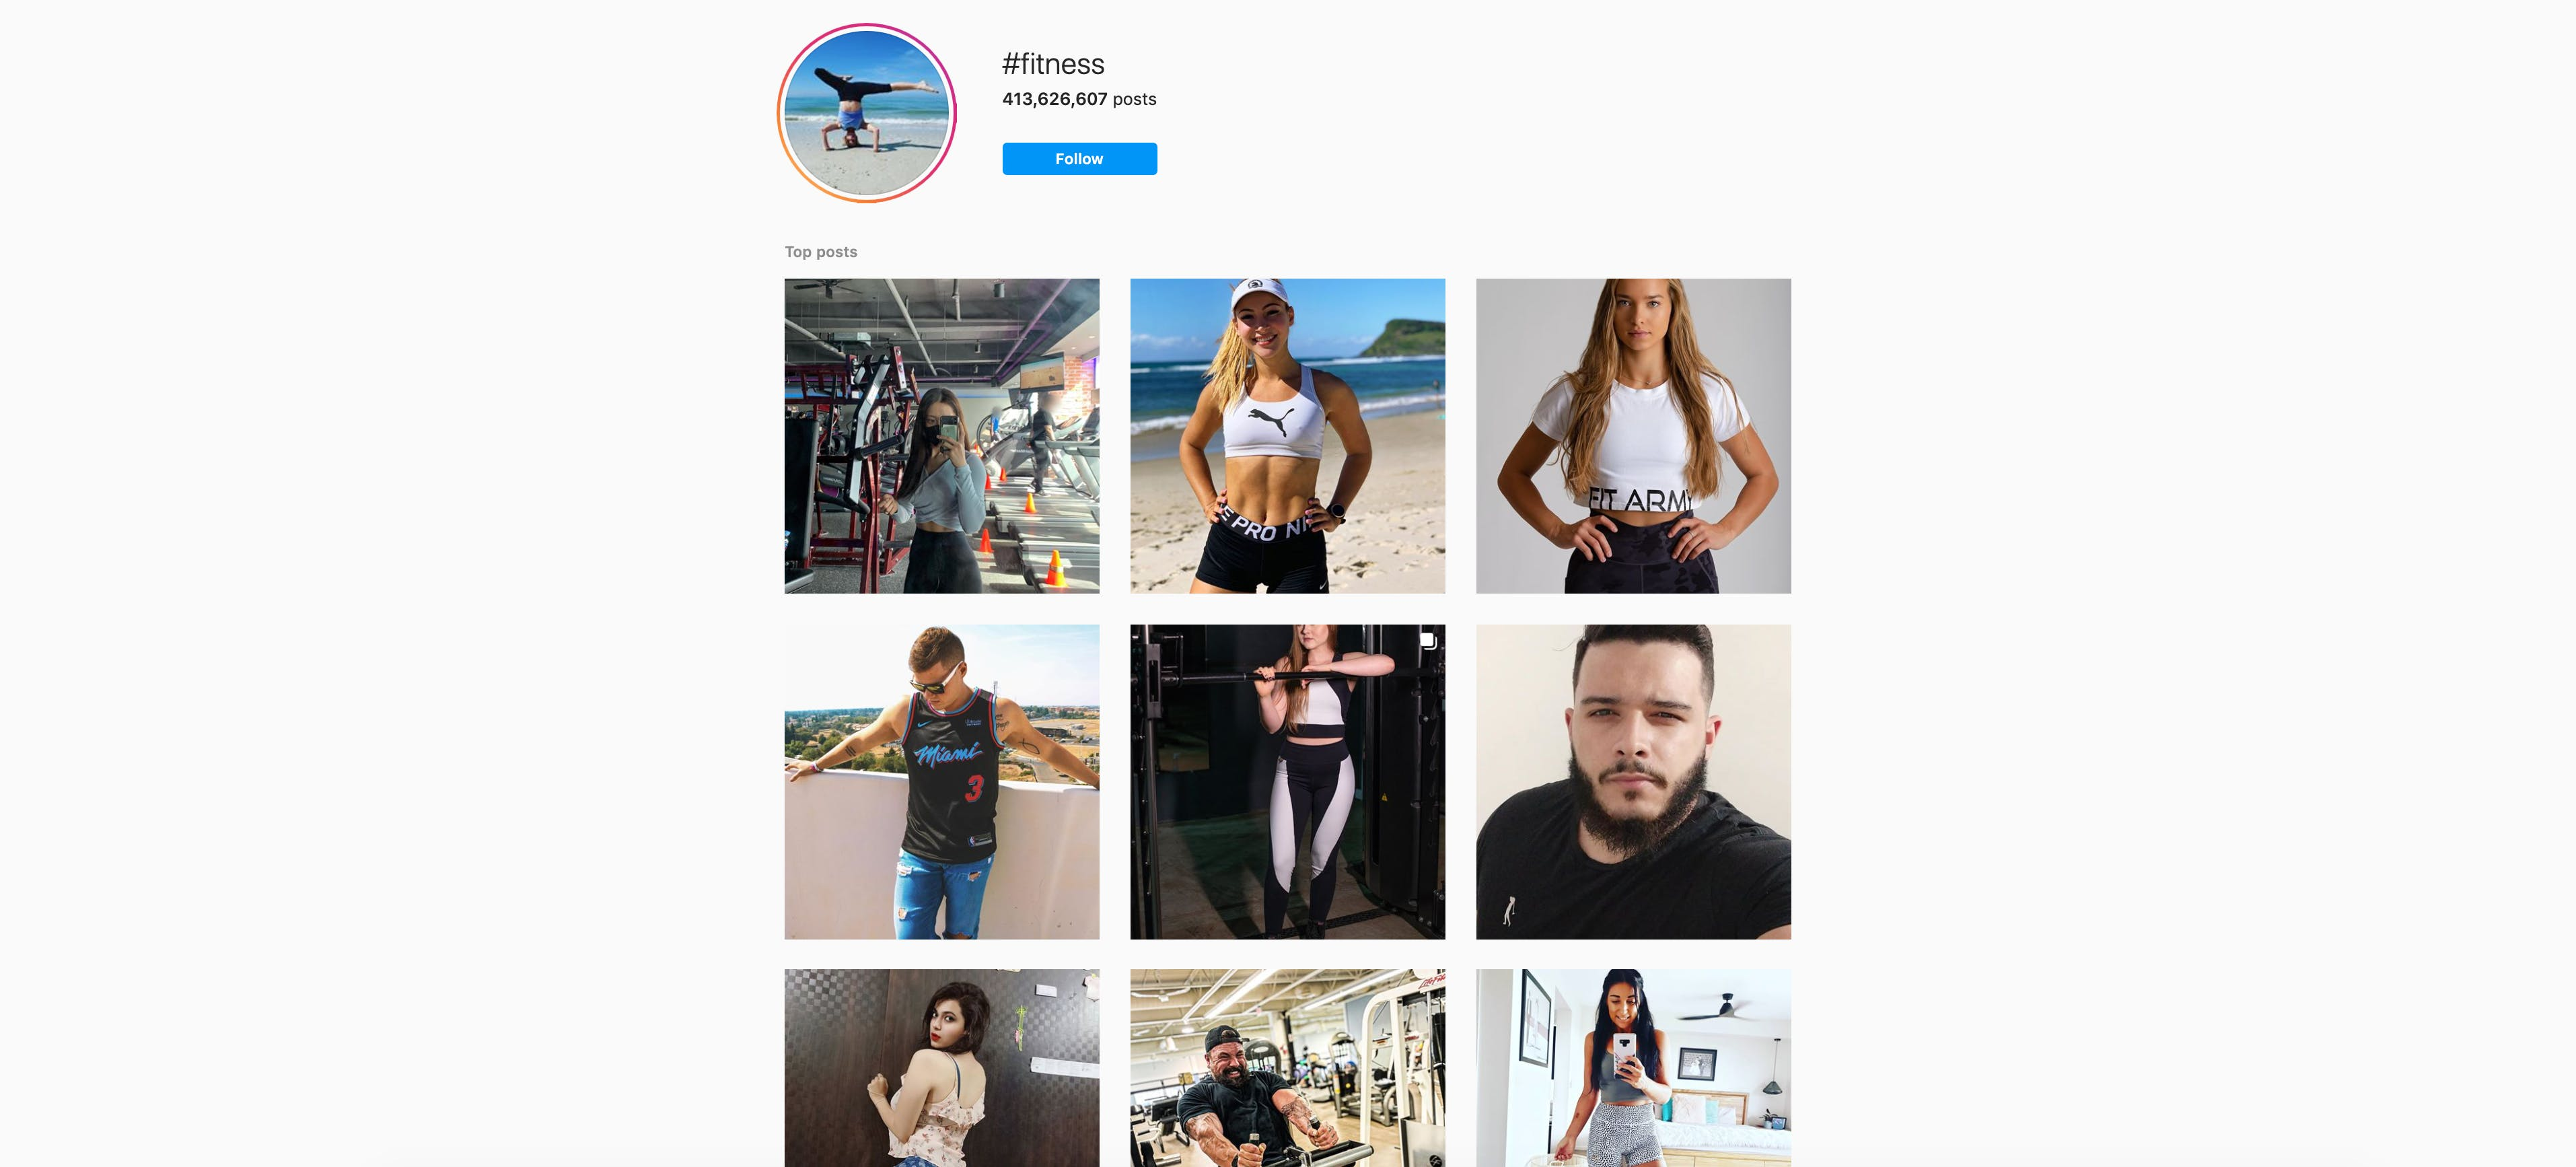 The feed for the #fitness hashtag on Instagram: users are able to view any post that includes the tag, including public Instagram Stories or sponsored posts.